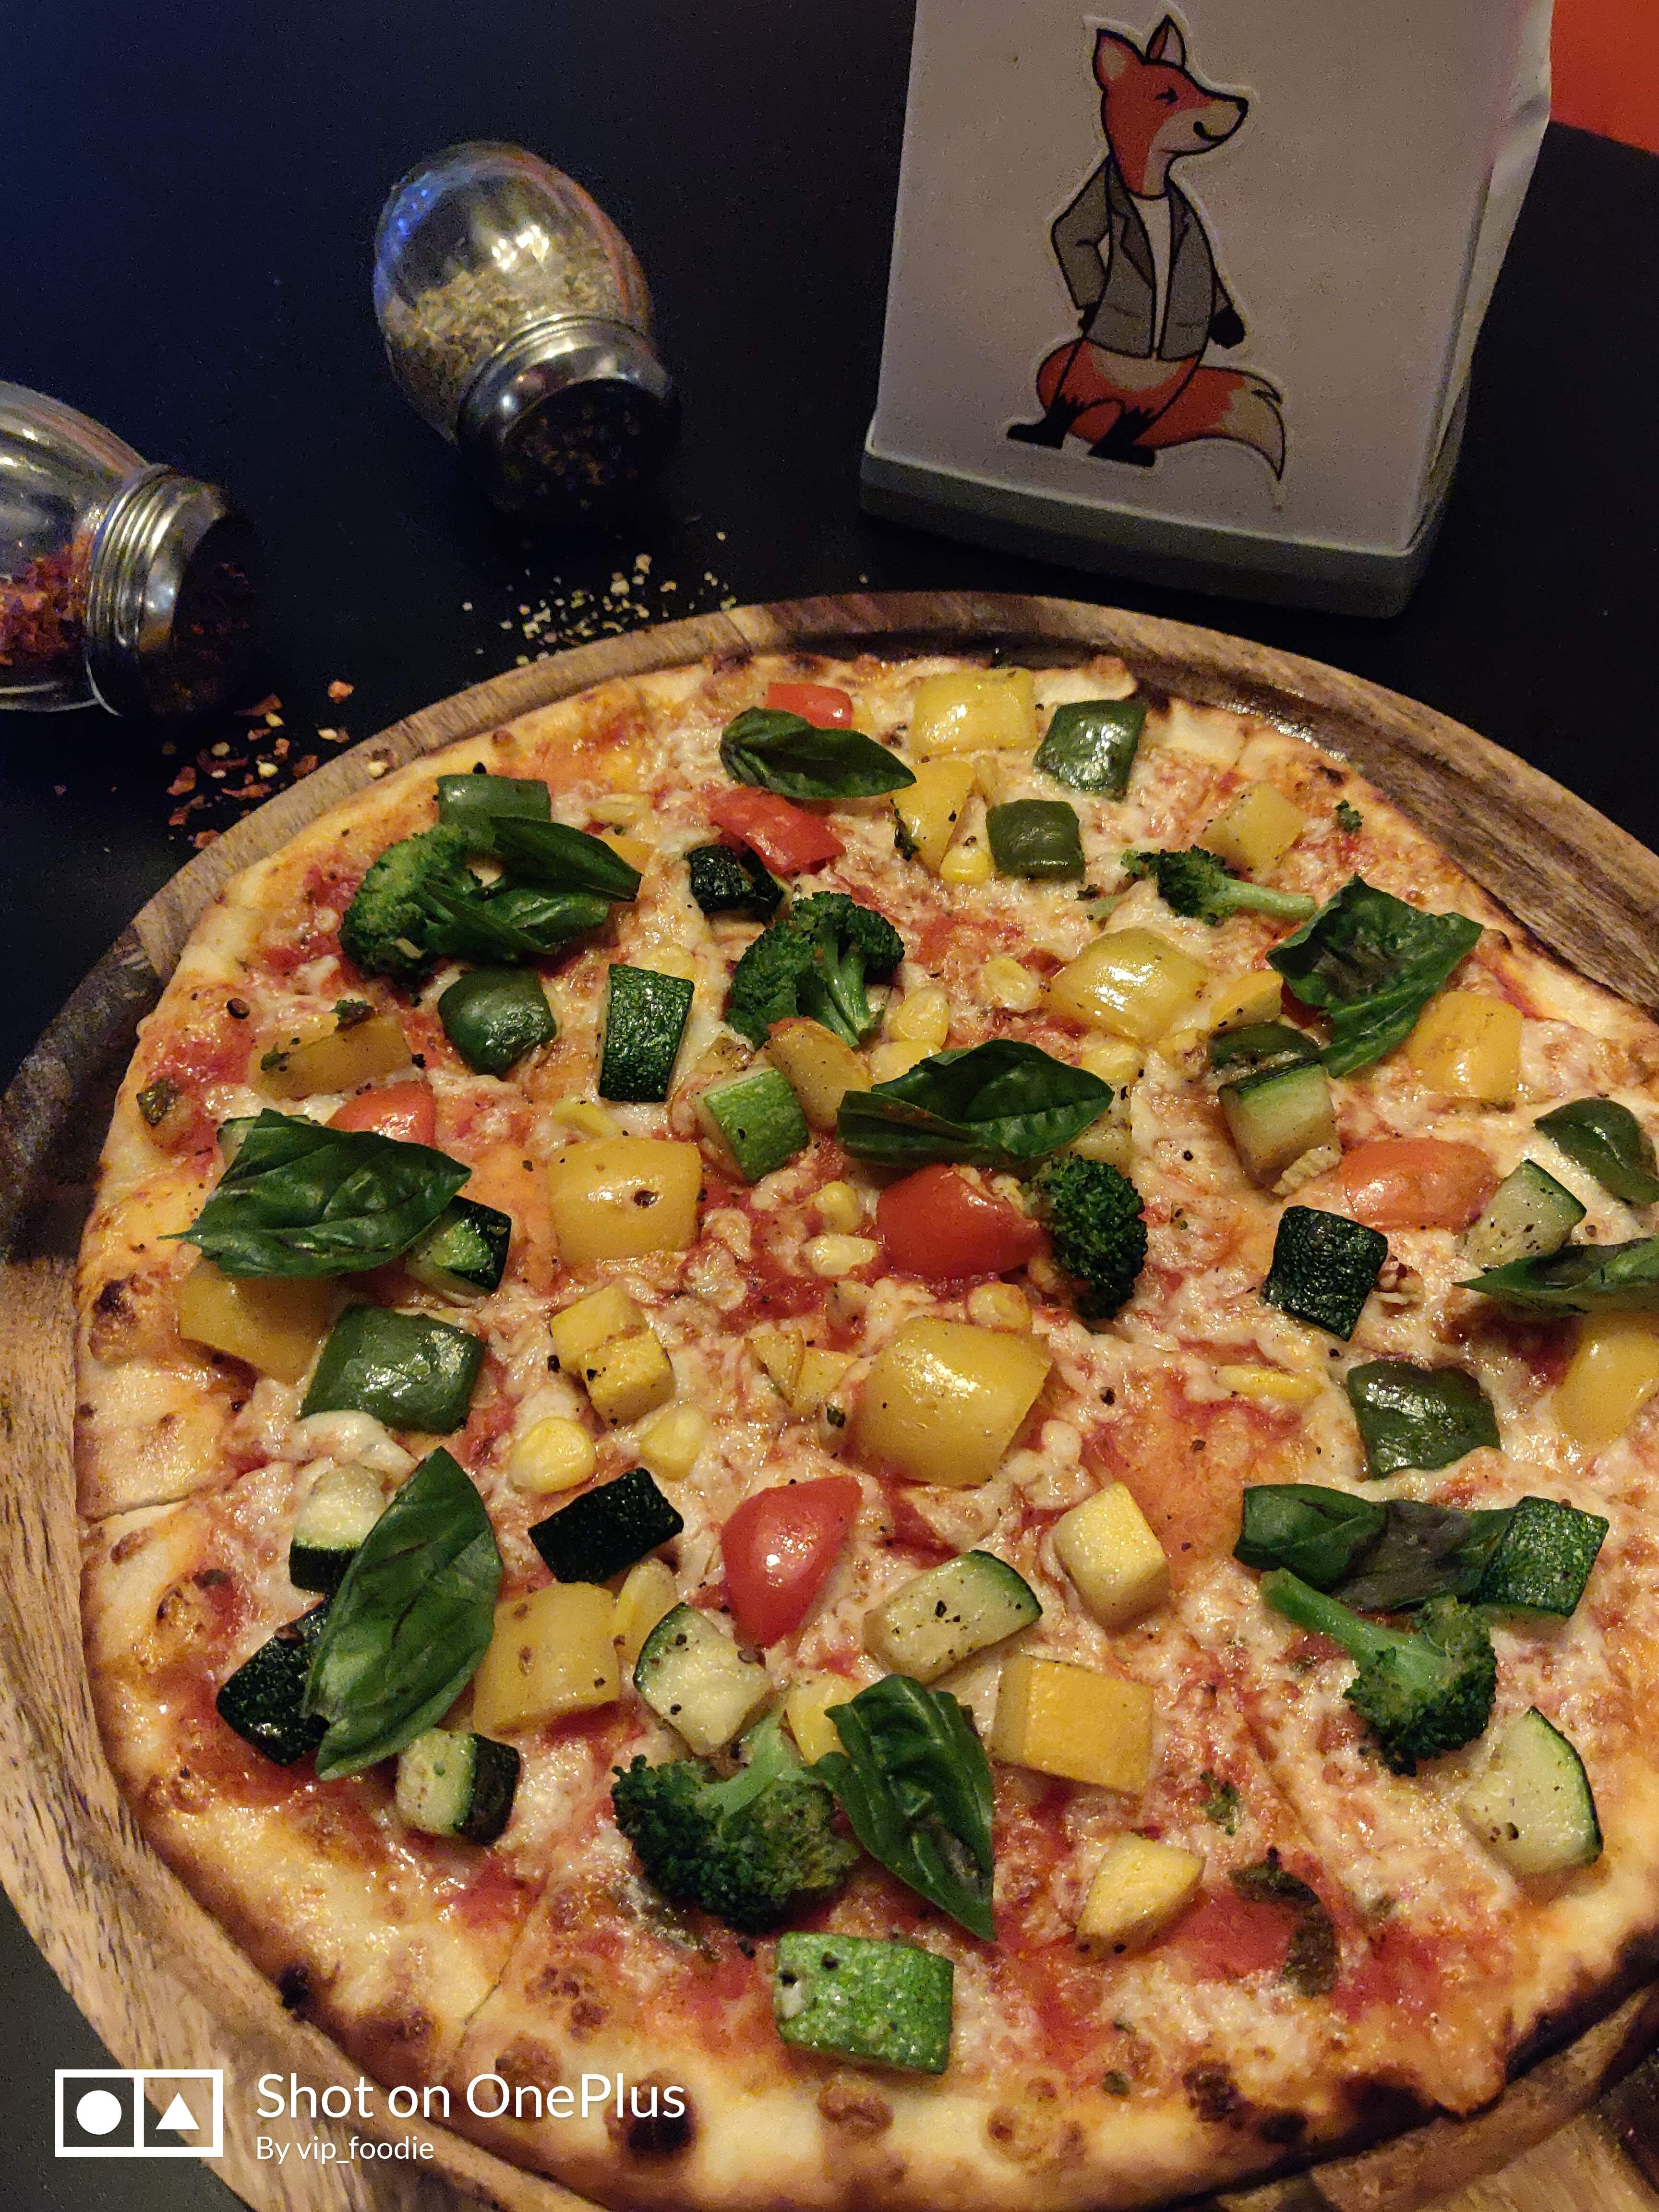 Dish,Pizza,Food,Cuisine,Pizza cheese,California-style pizza,Ingredient,Flatbread,Italian food,Brunch